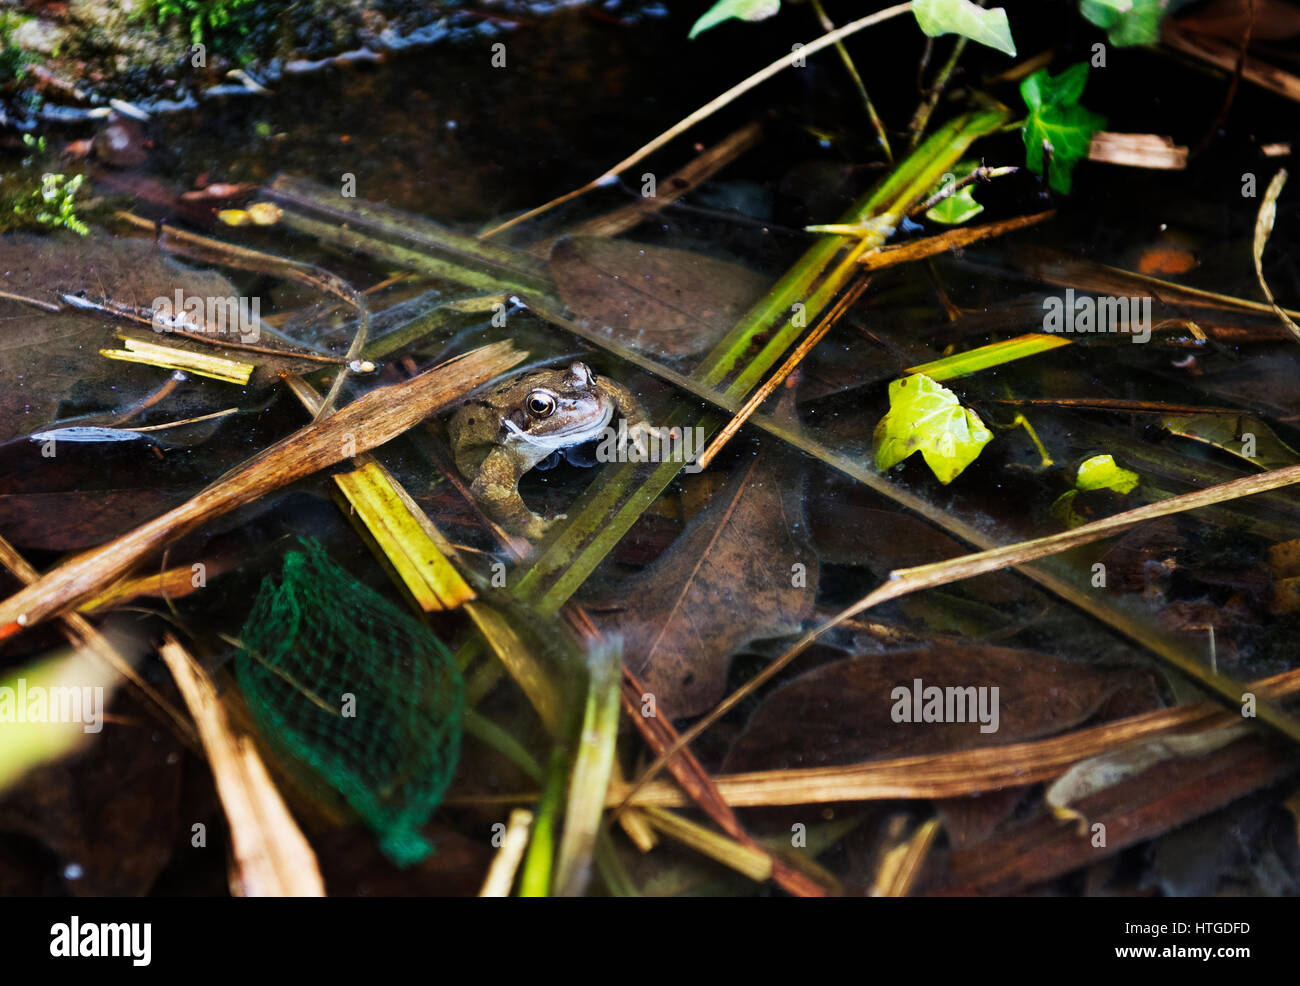 Thaxted, UK. 11th March 2017. Frog in garden pond, Thaxted. A common frog emerges from his winter home into the - Stock Image